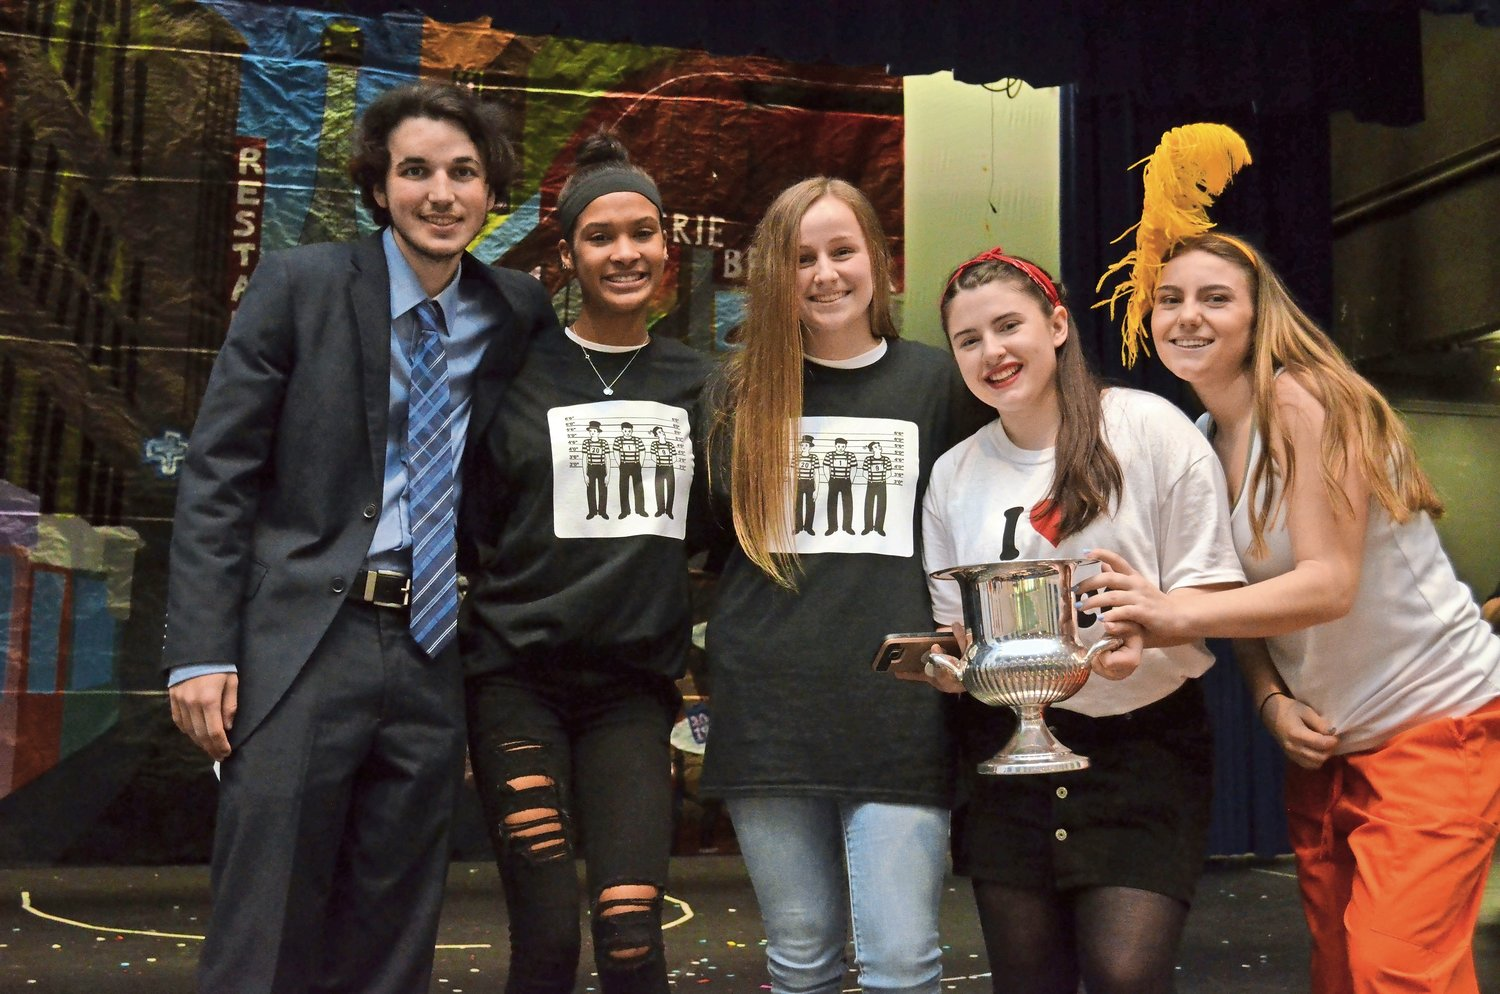 The senior class; represented by, from left, Nick Becker, Jamie Keegan, Laura Millan, Lauren Boll and Giavanna DeMelia; took home the coveted Rock Rivalry Silver Cup.